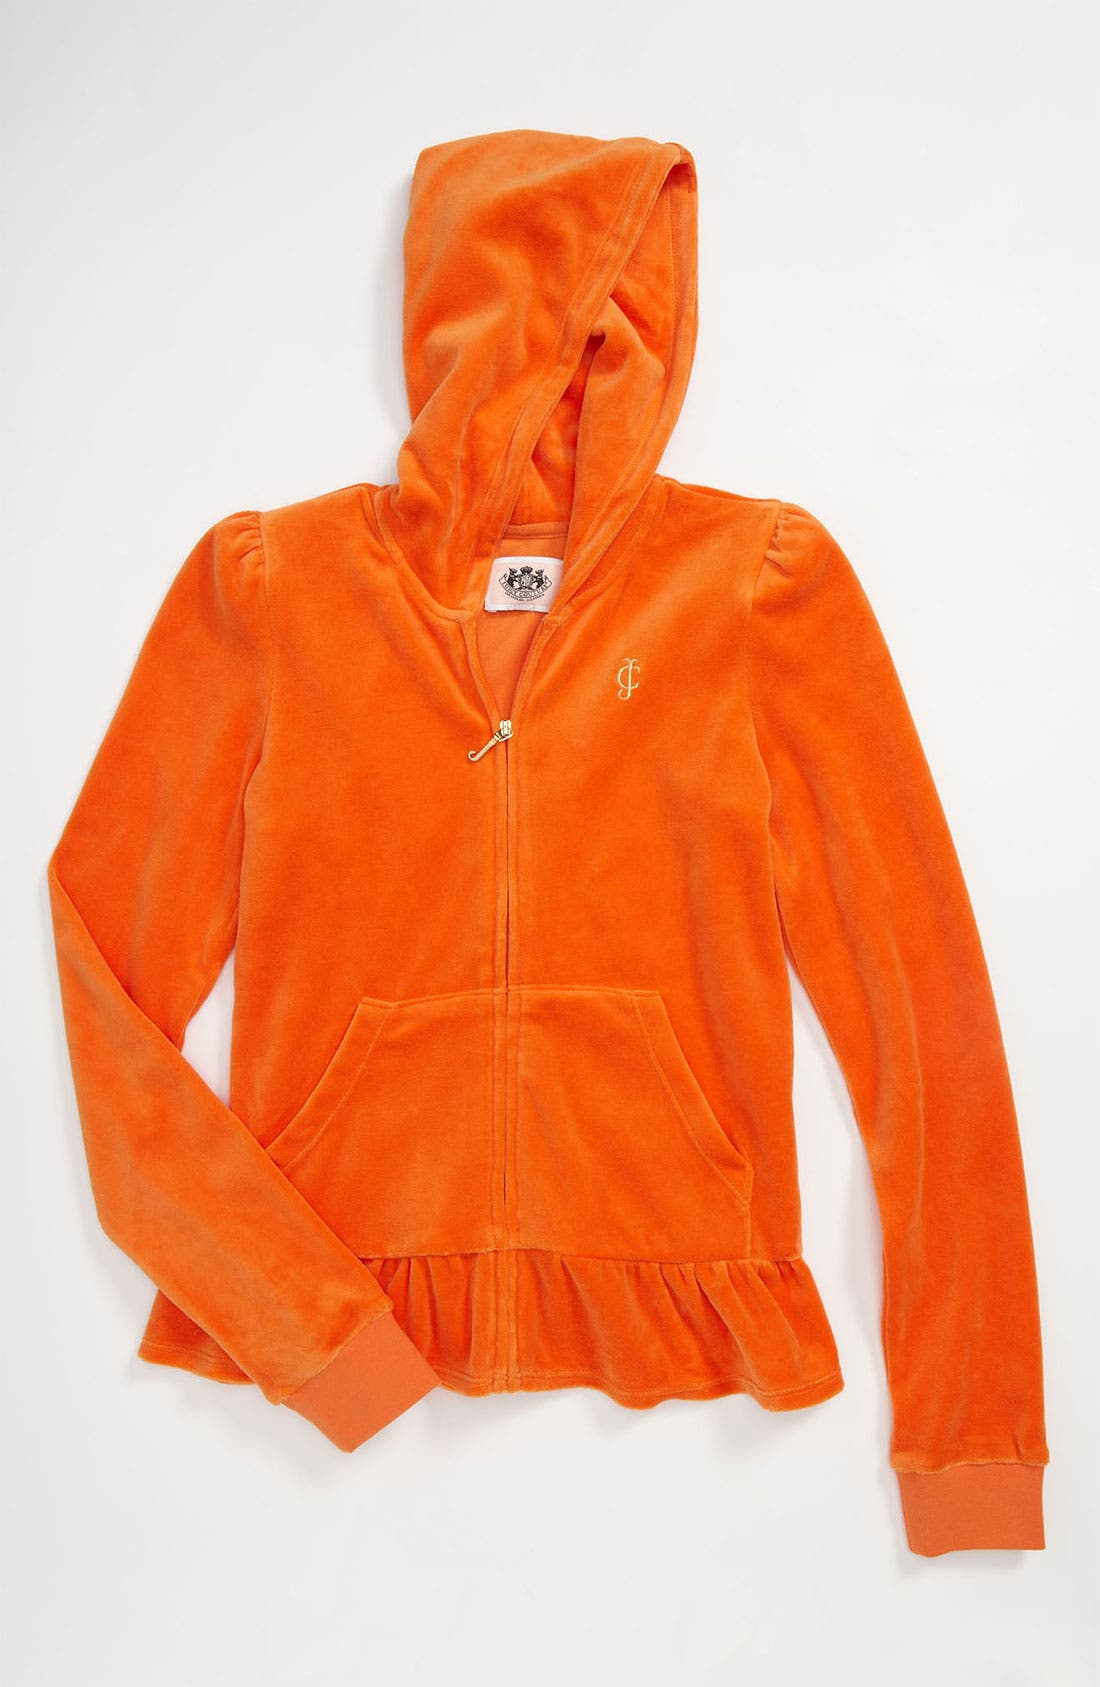 Alternate Image 1 Selected - Juicy Couture 'Basic' Hoodie (Little Girls & Big Girls)